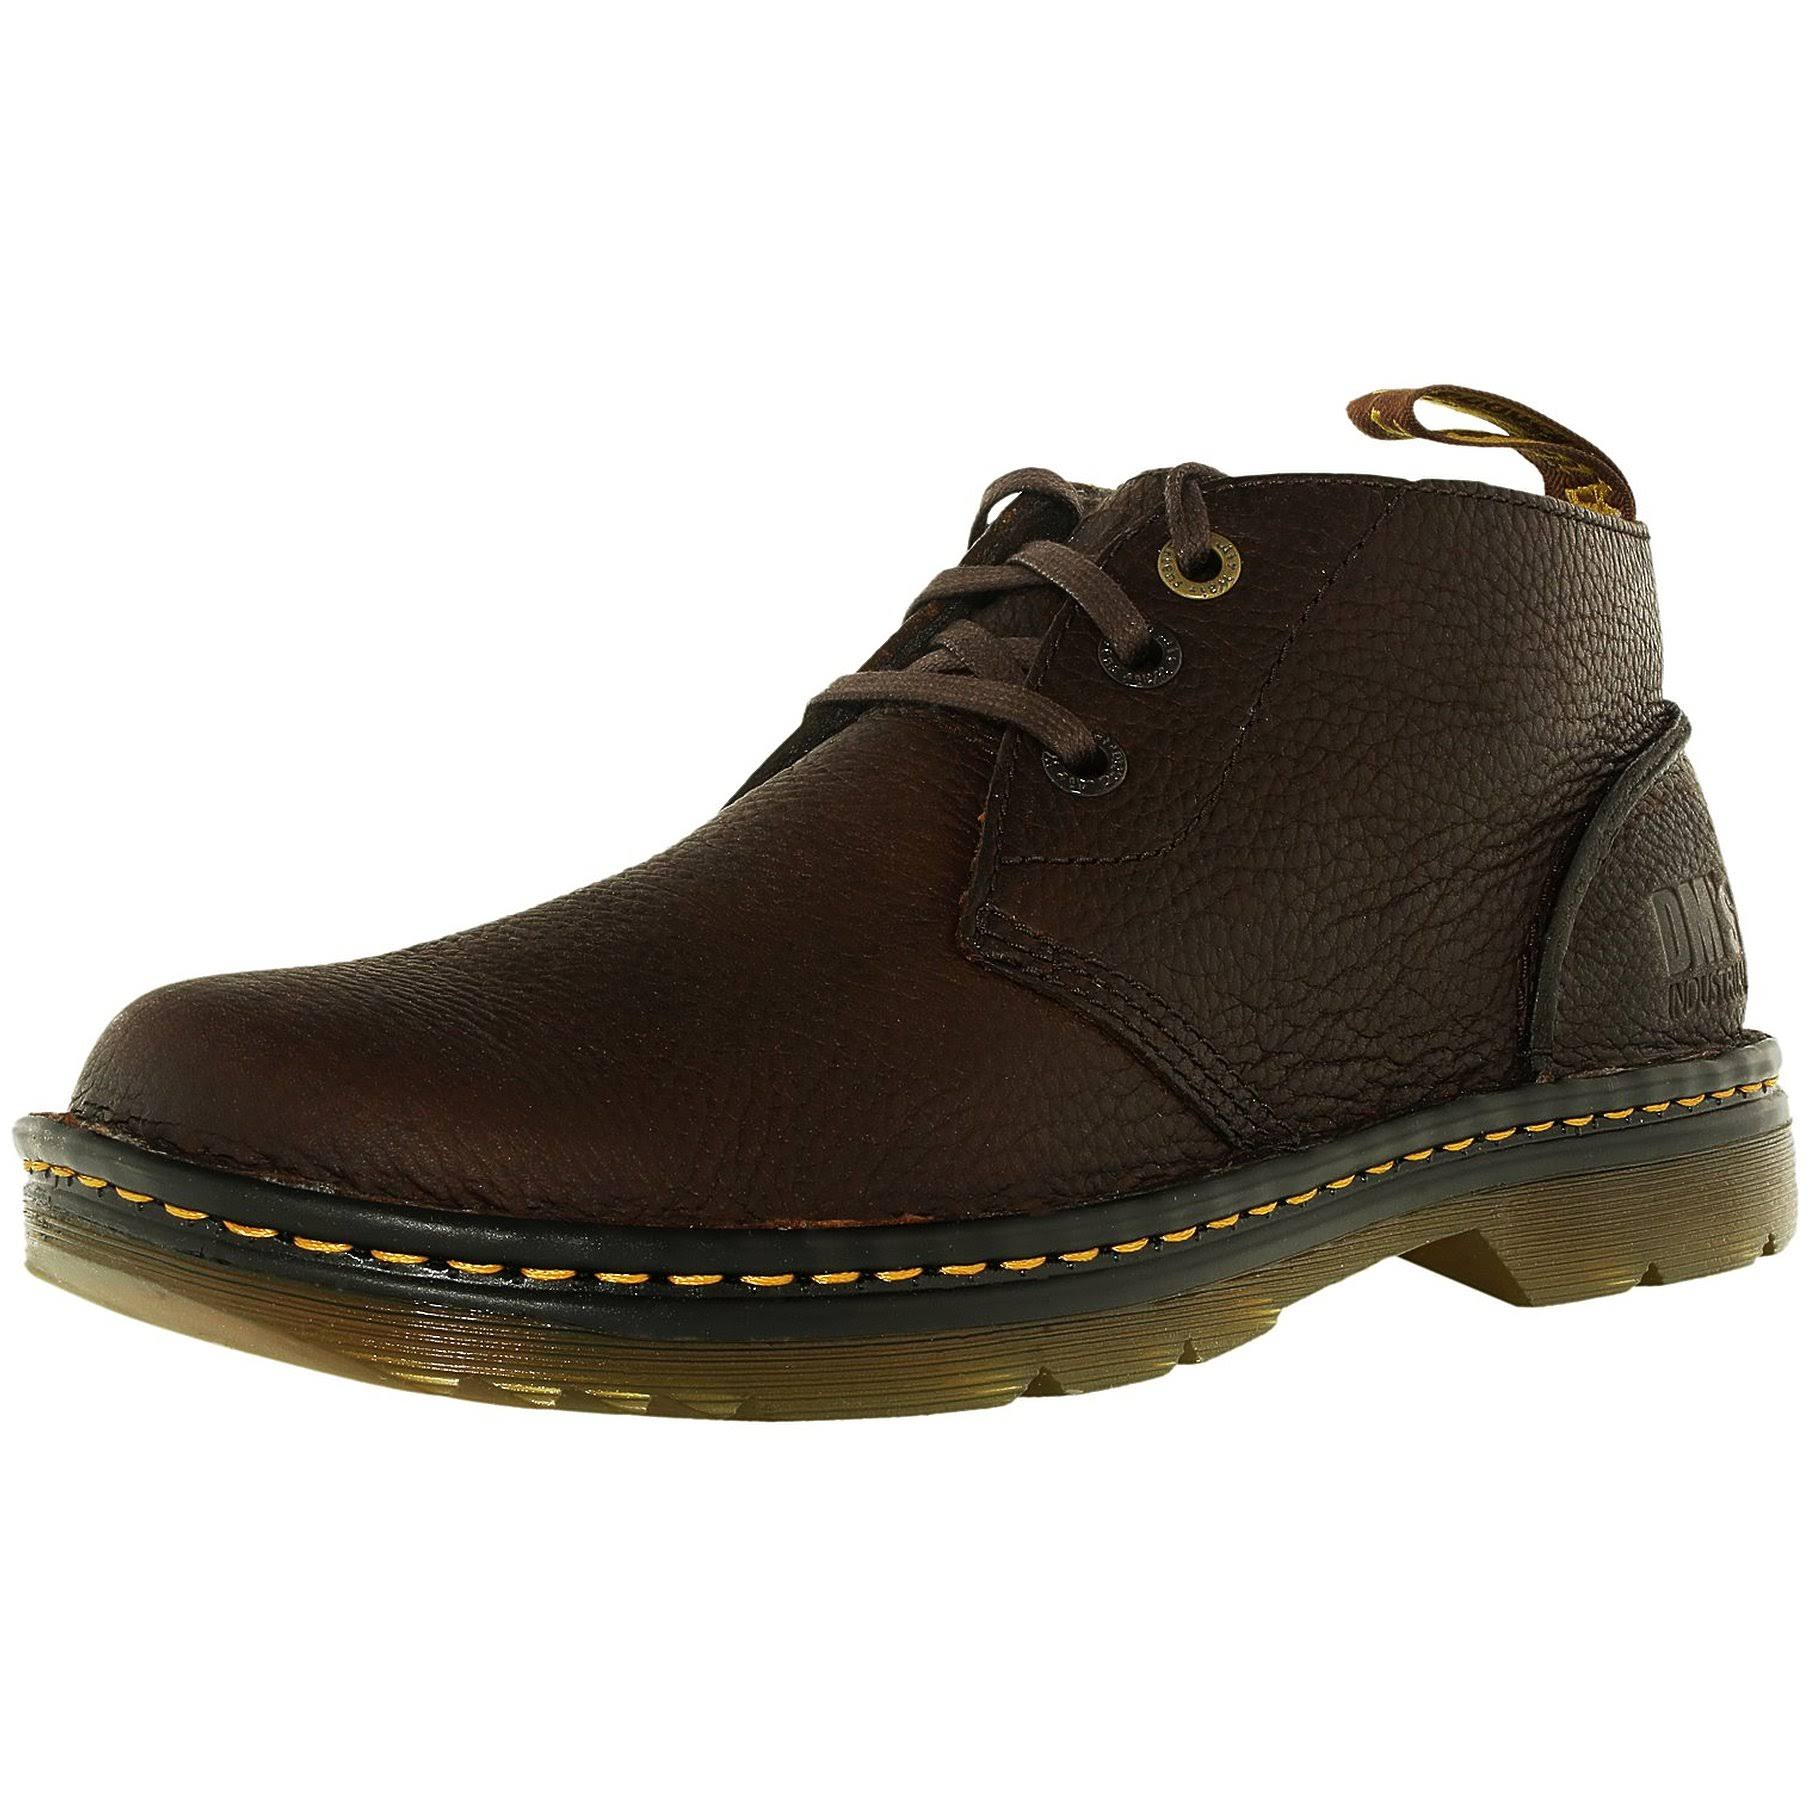 DrMartens Chukka DrMartens Sussex DrMartens Brown BootMen's BootMen's Sussex Chukka Brown 0PX8nwOk